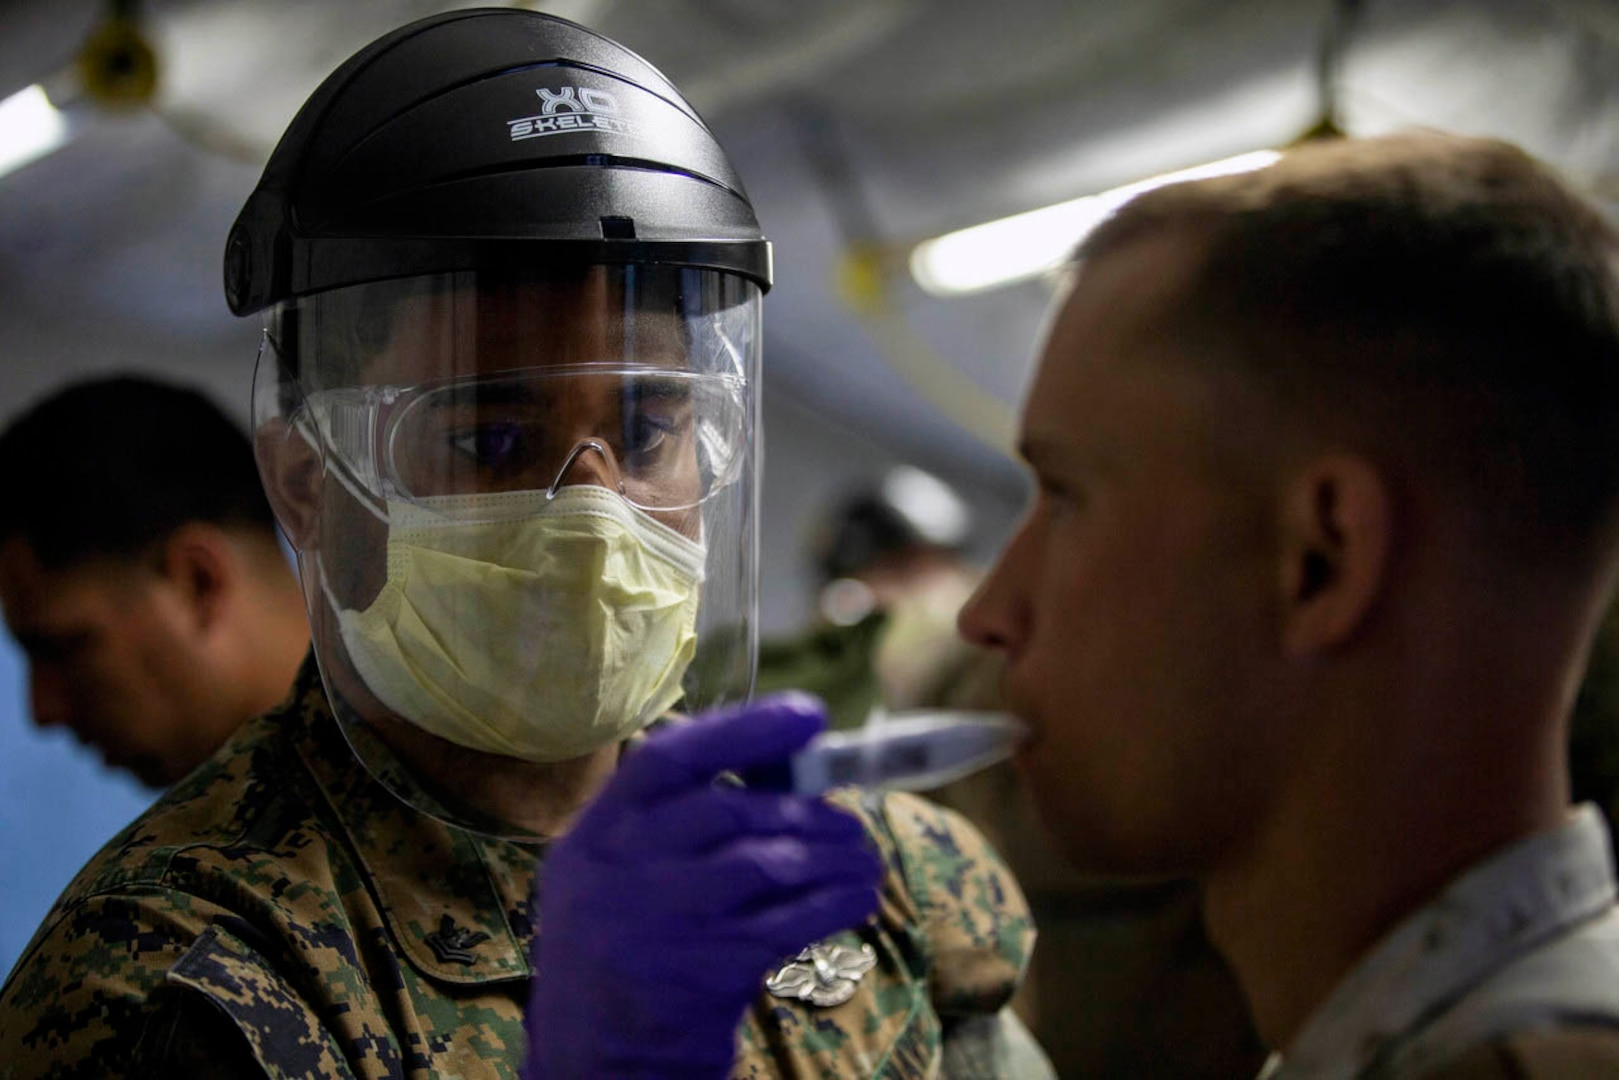 DOD Starts Tiered COVID-19 Testing Process to Ensure Safety